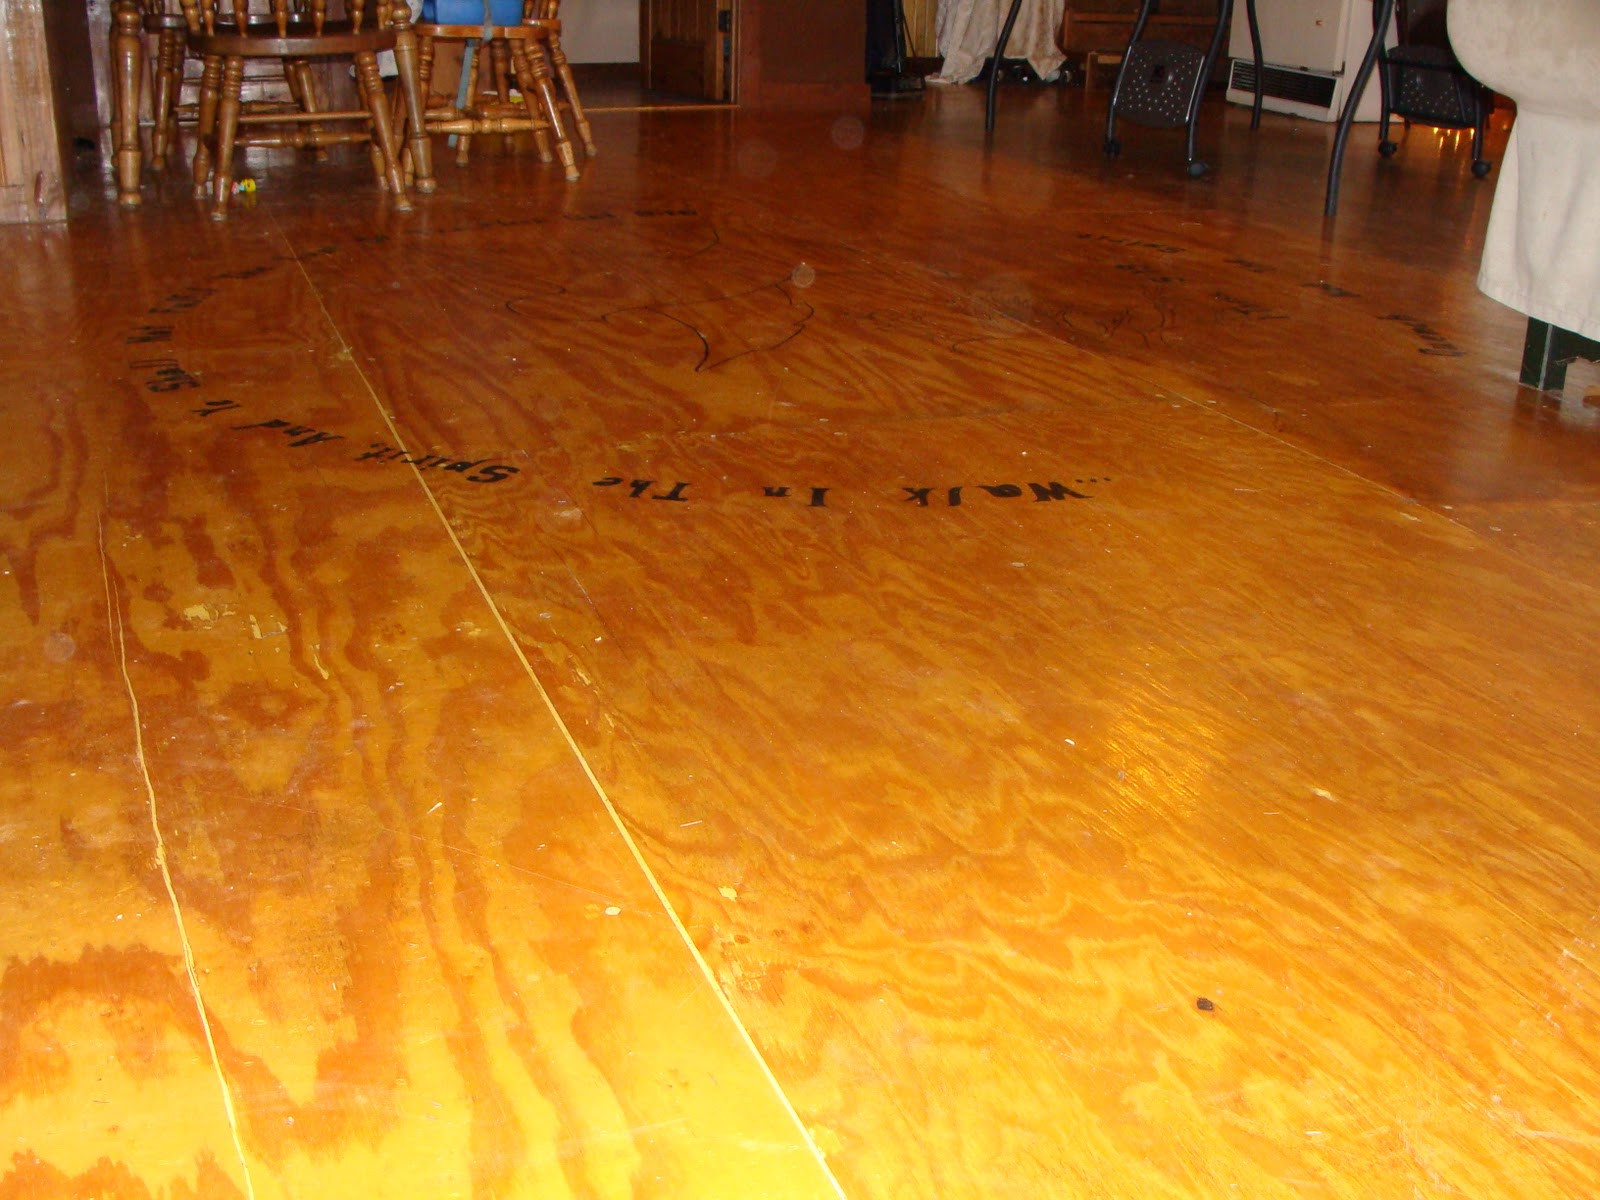 Best ideas about DIY Wood Floor . Save or Pin Sowin Love DIY Wood Floor For Families Now.